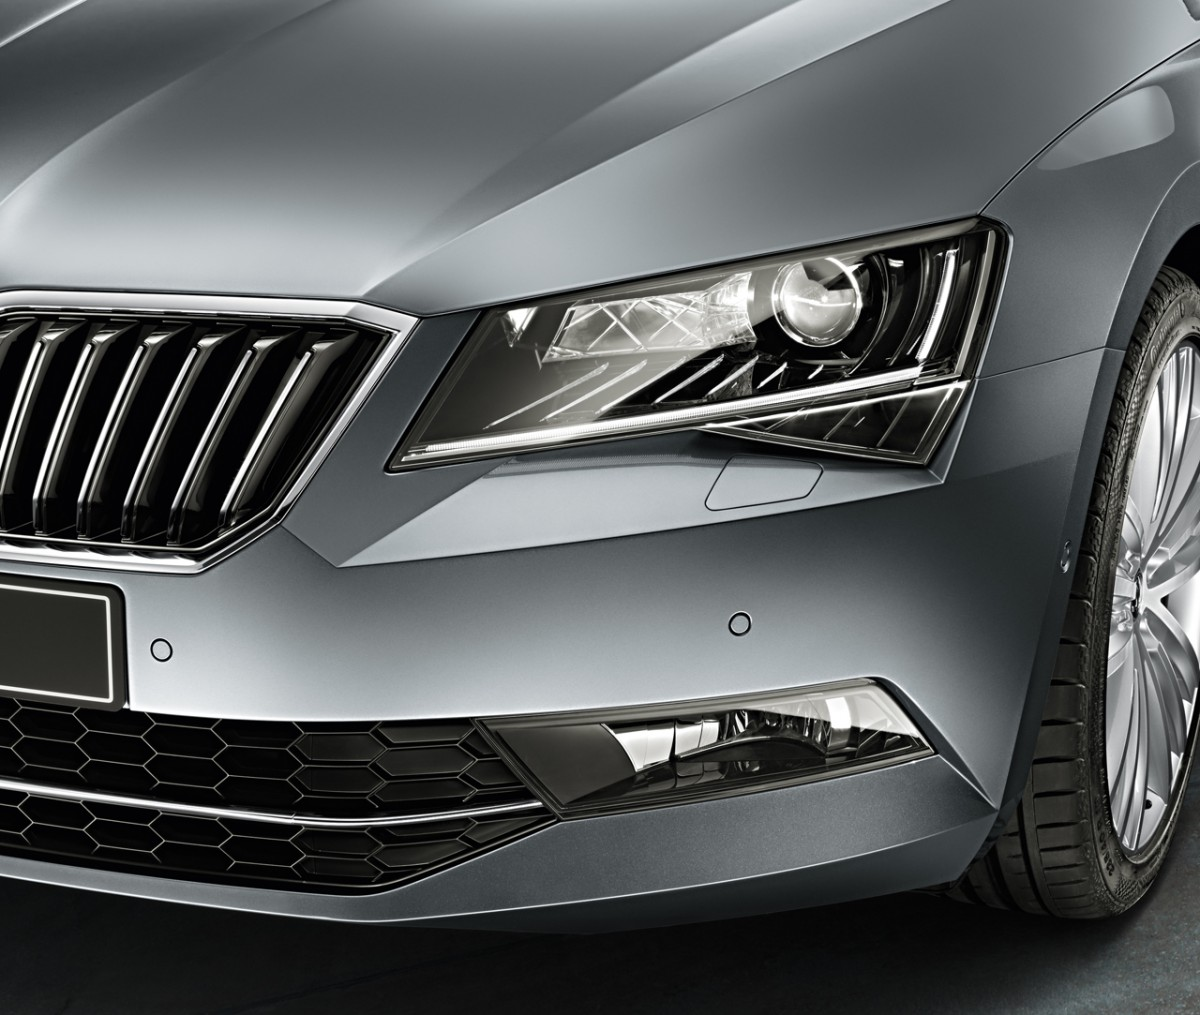 SKODA-Superb-dynamic-light-features-2